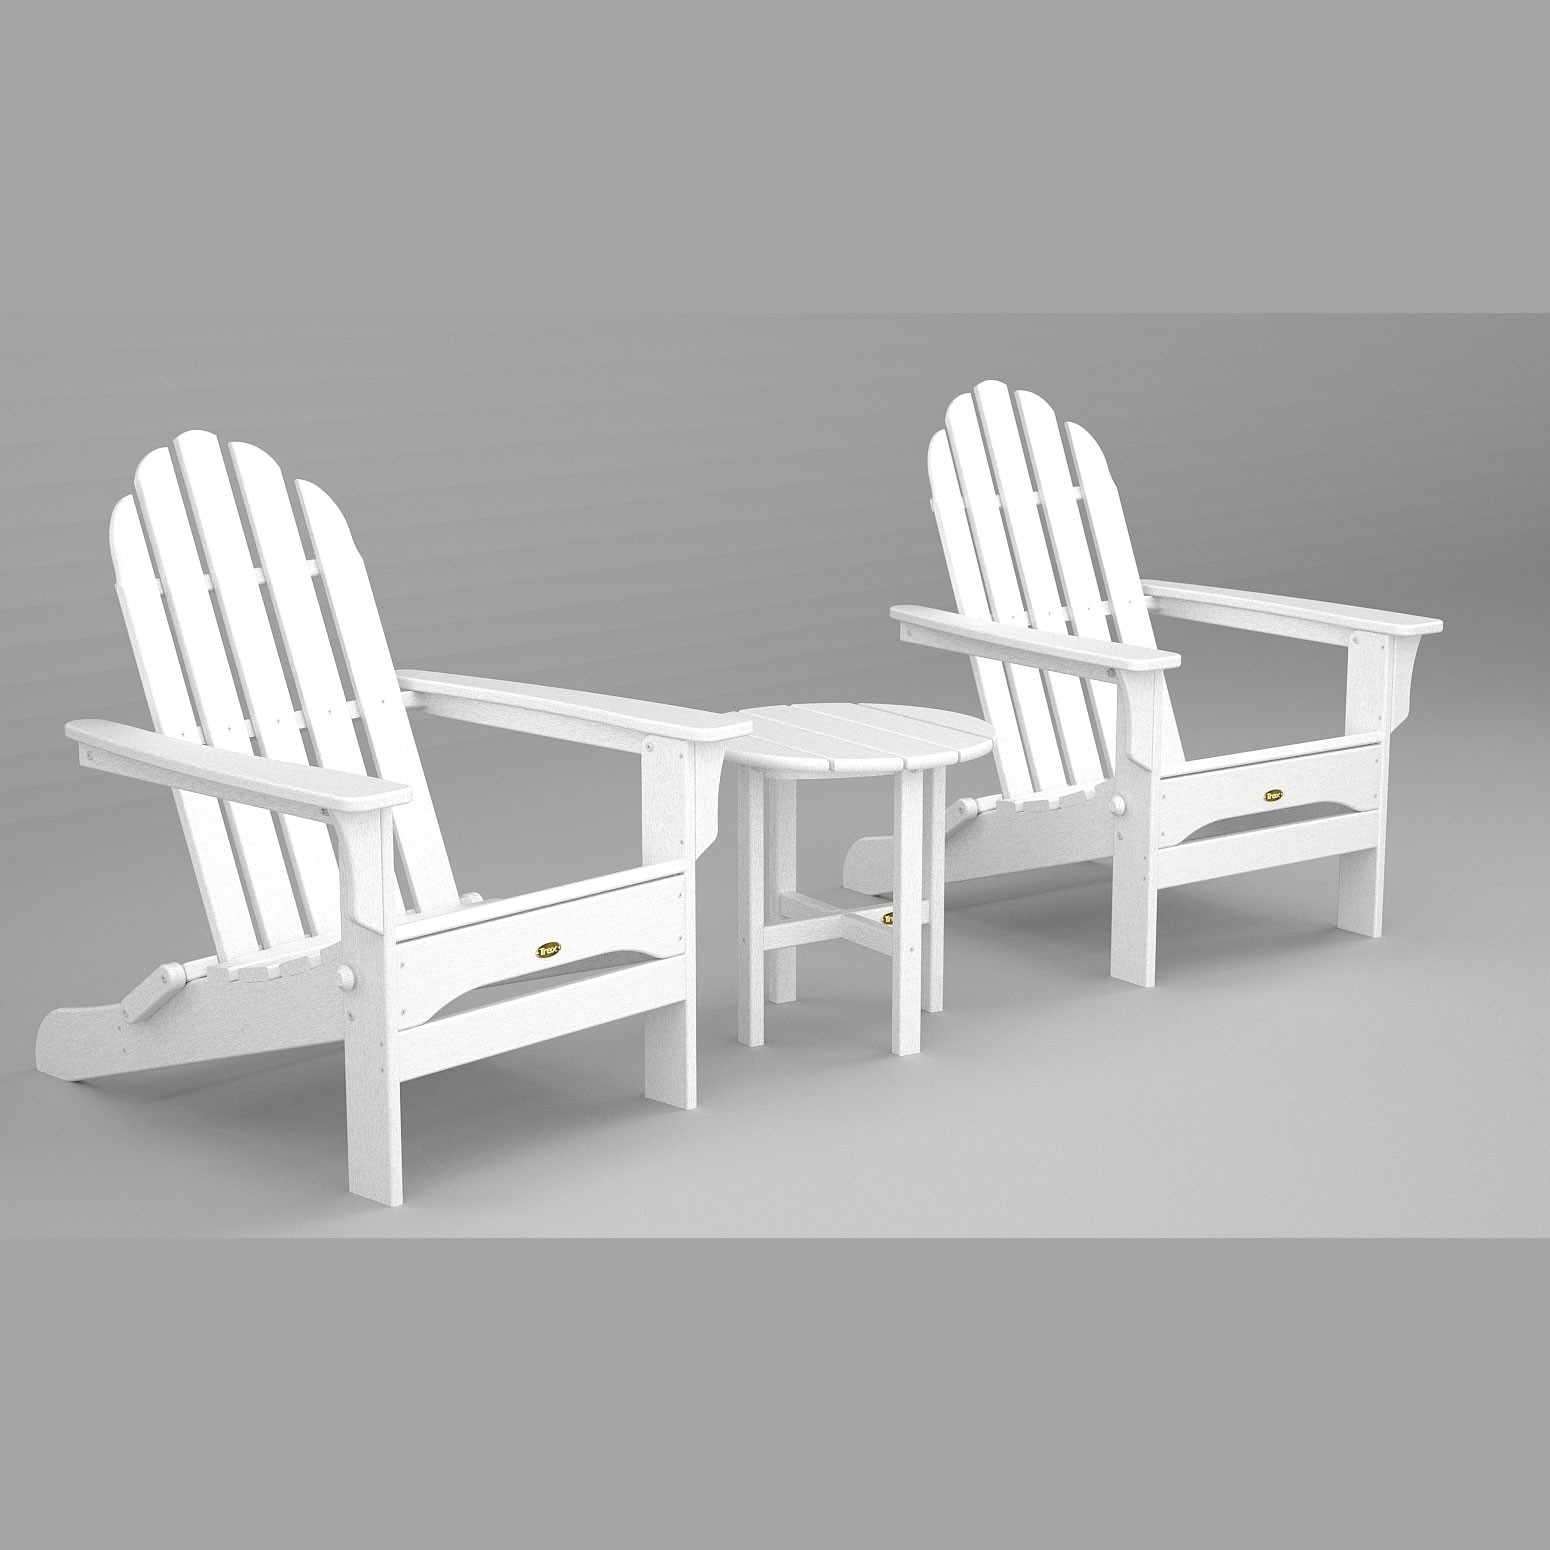 Trex® Outdoor Furniture Cape Cod Folding Adirondack Seating Set